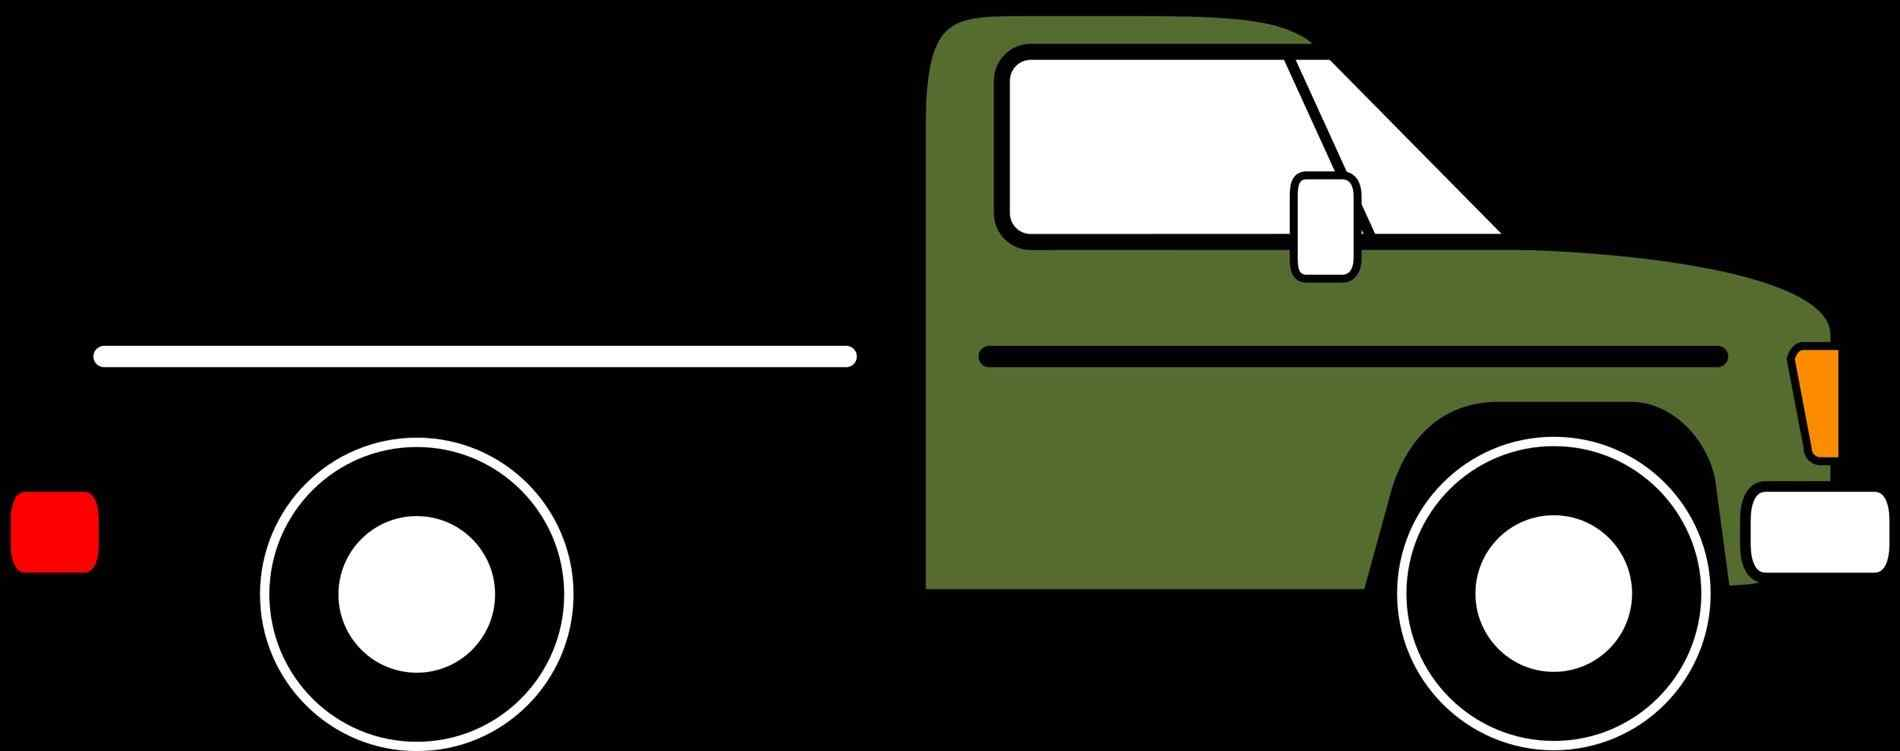 1900x751 Blank Truck Clipart Equipment Needed For Wireless Network